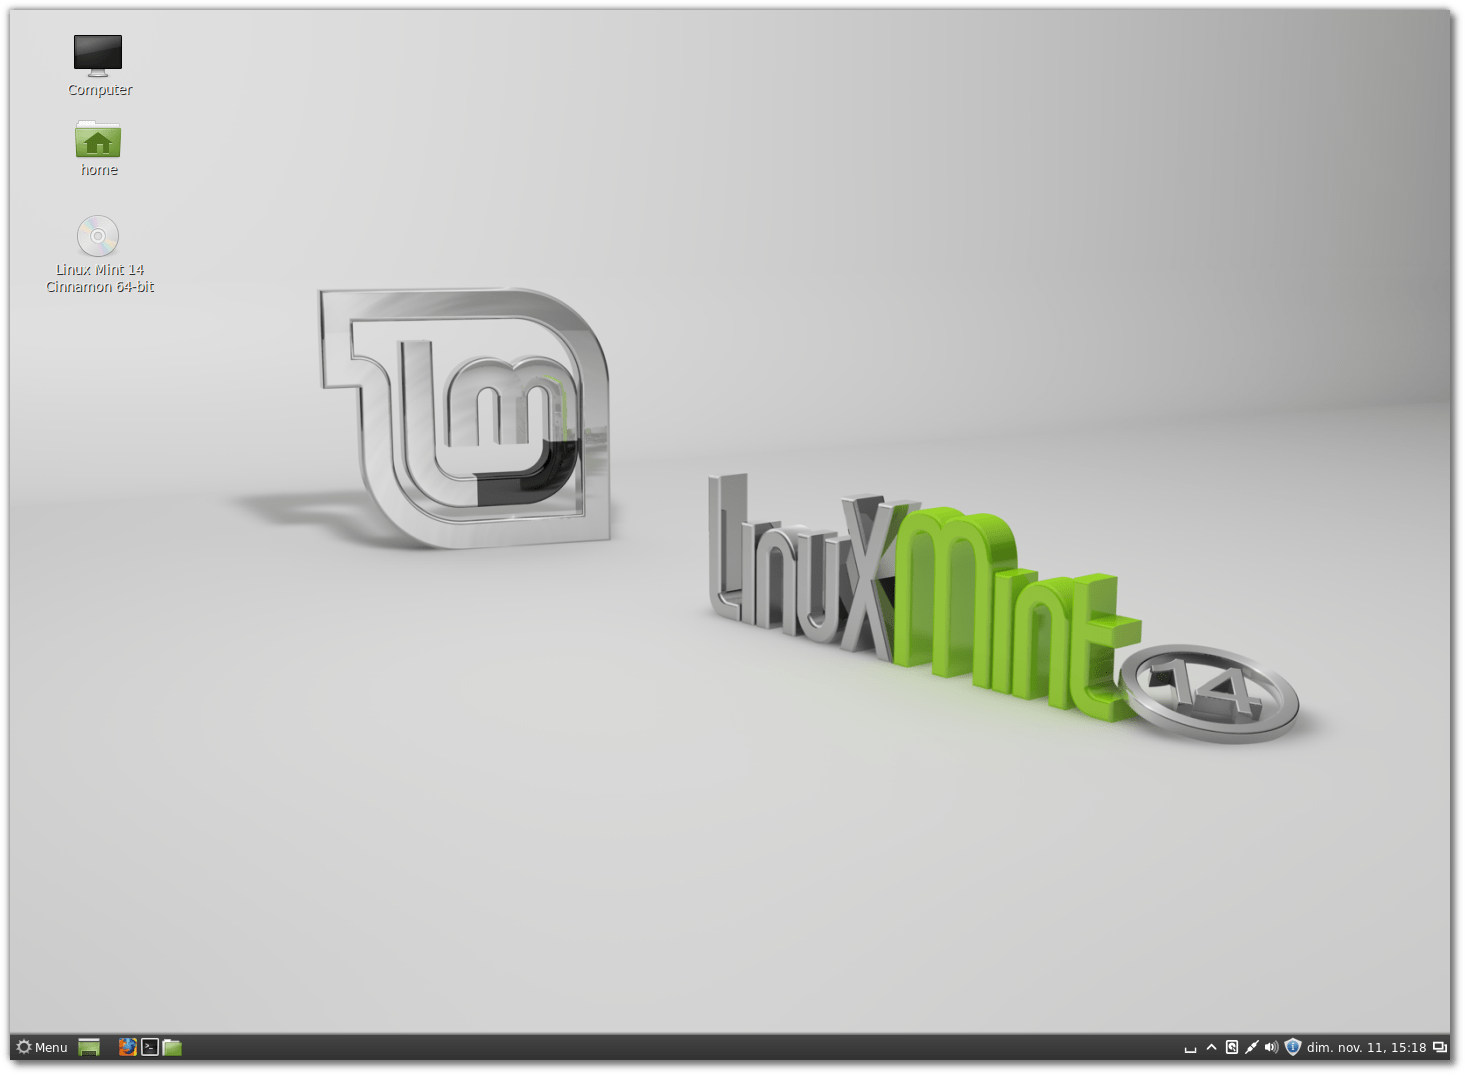 linux-mint-14-rc